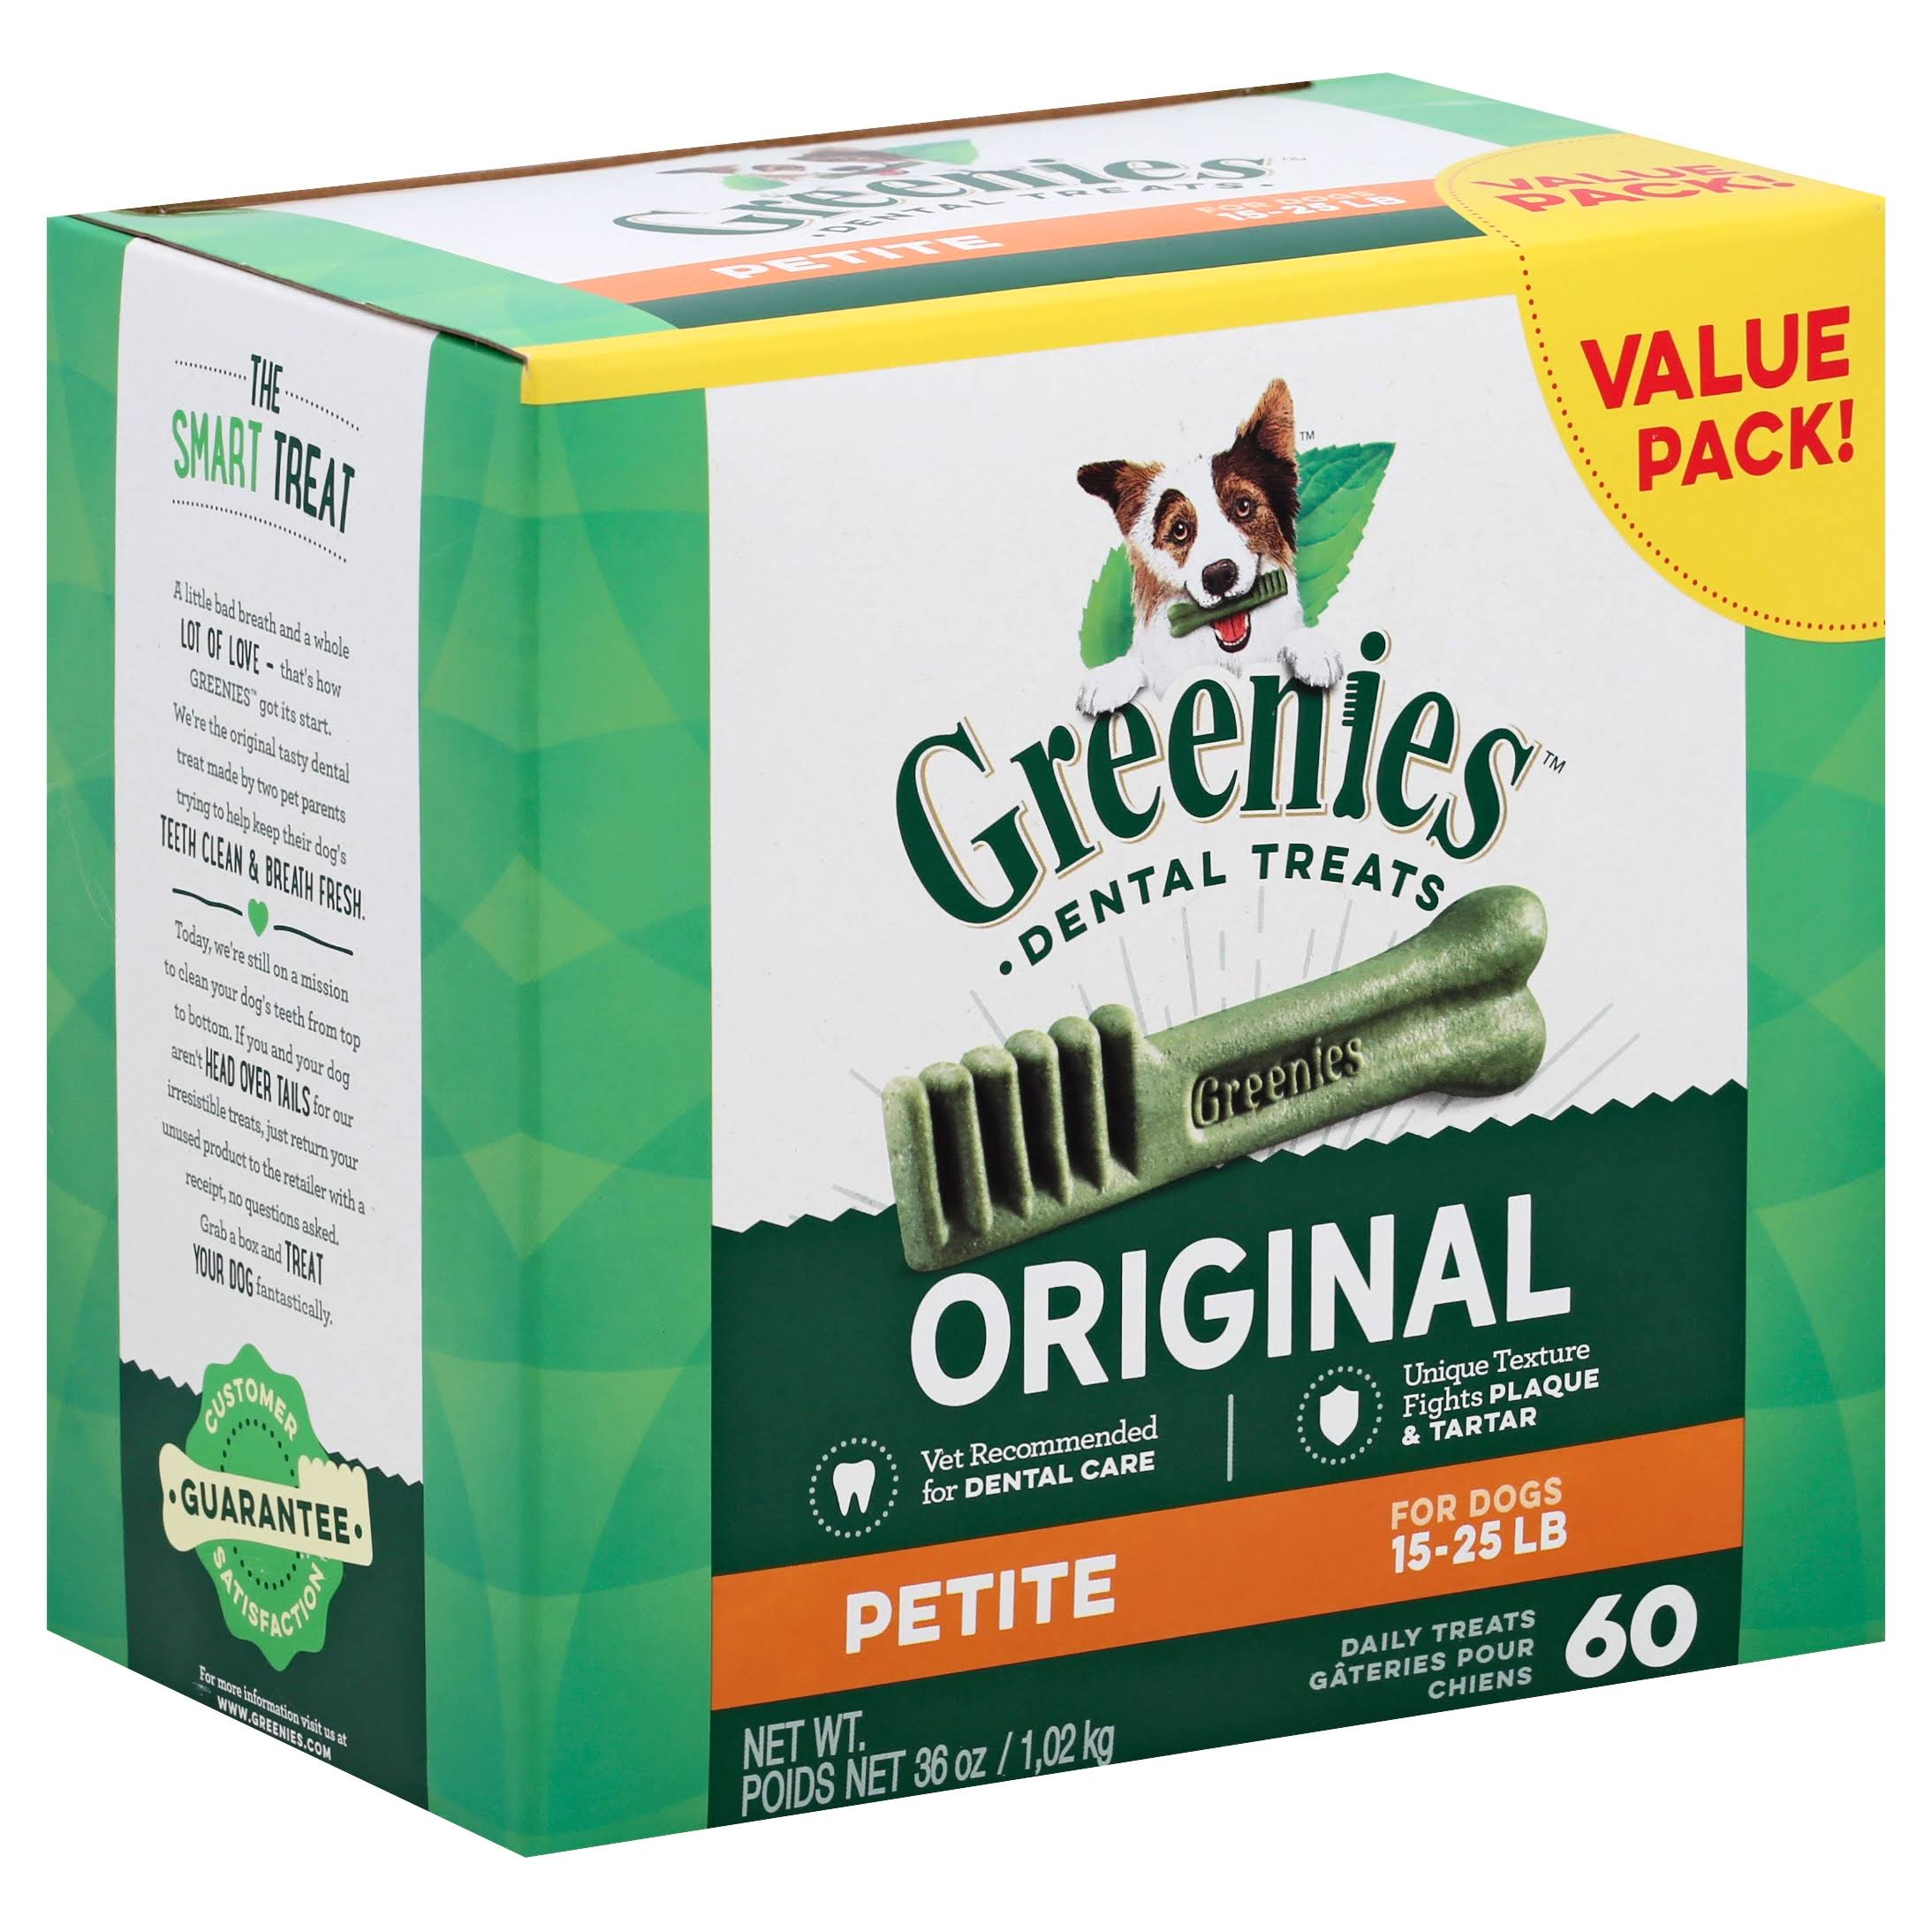 Greenies Original Dog Dental Chews Dog Treats - Petite, 36oz